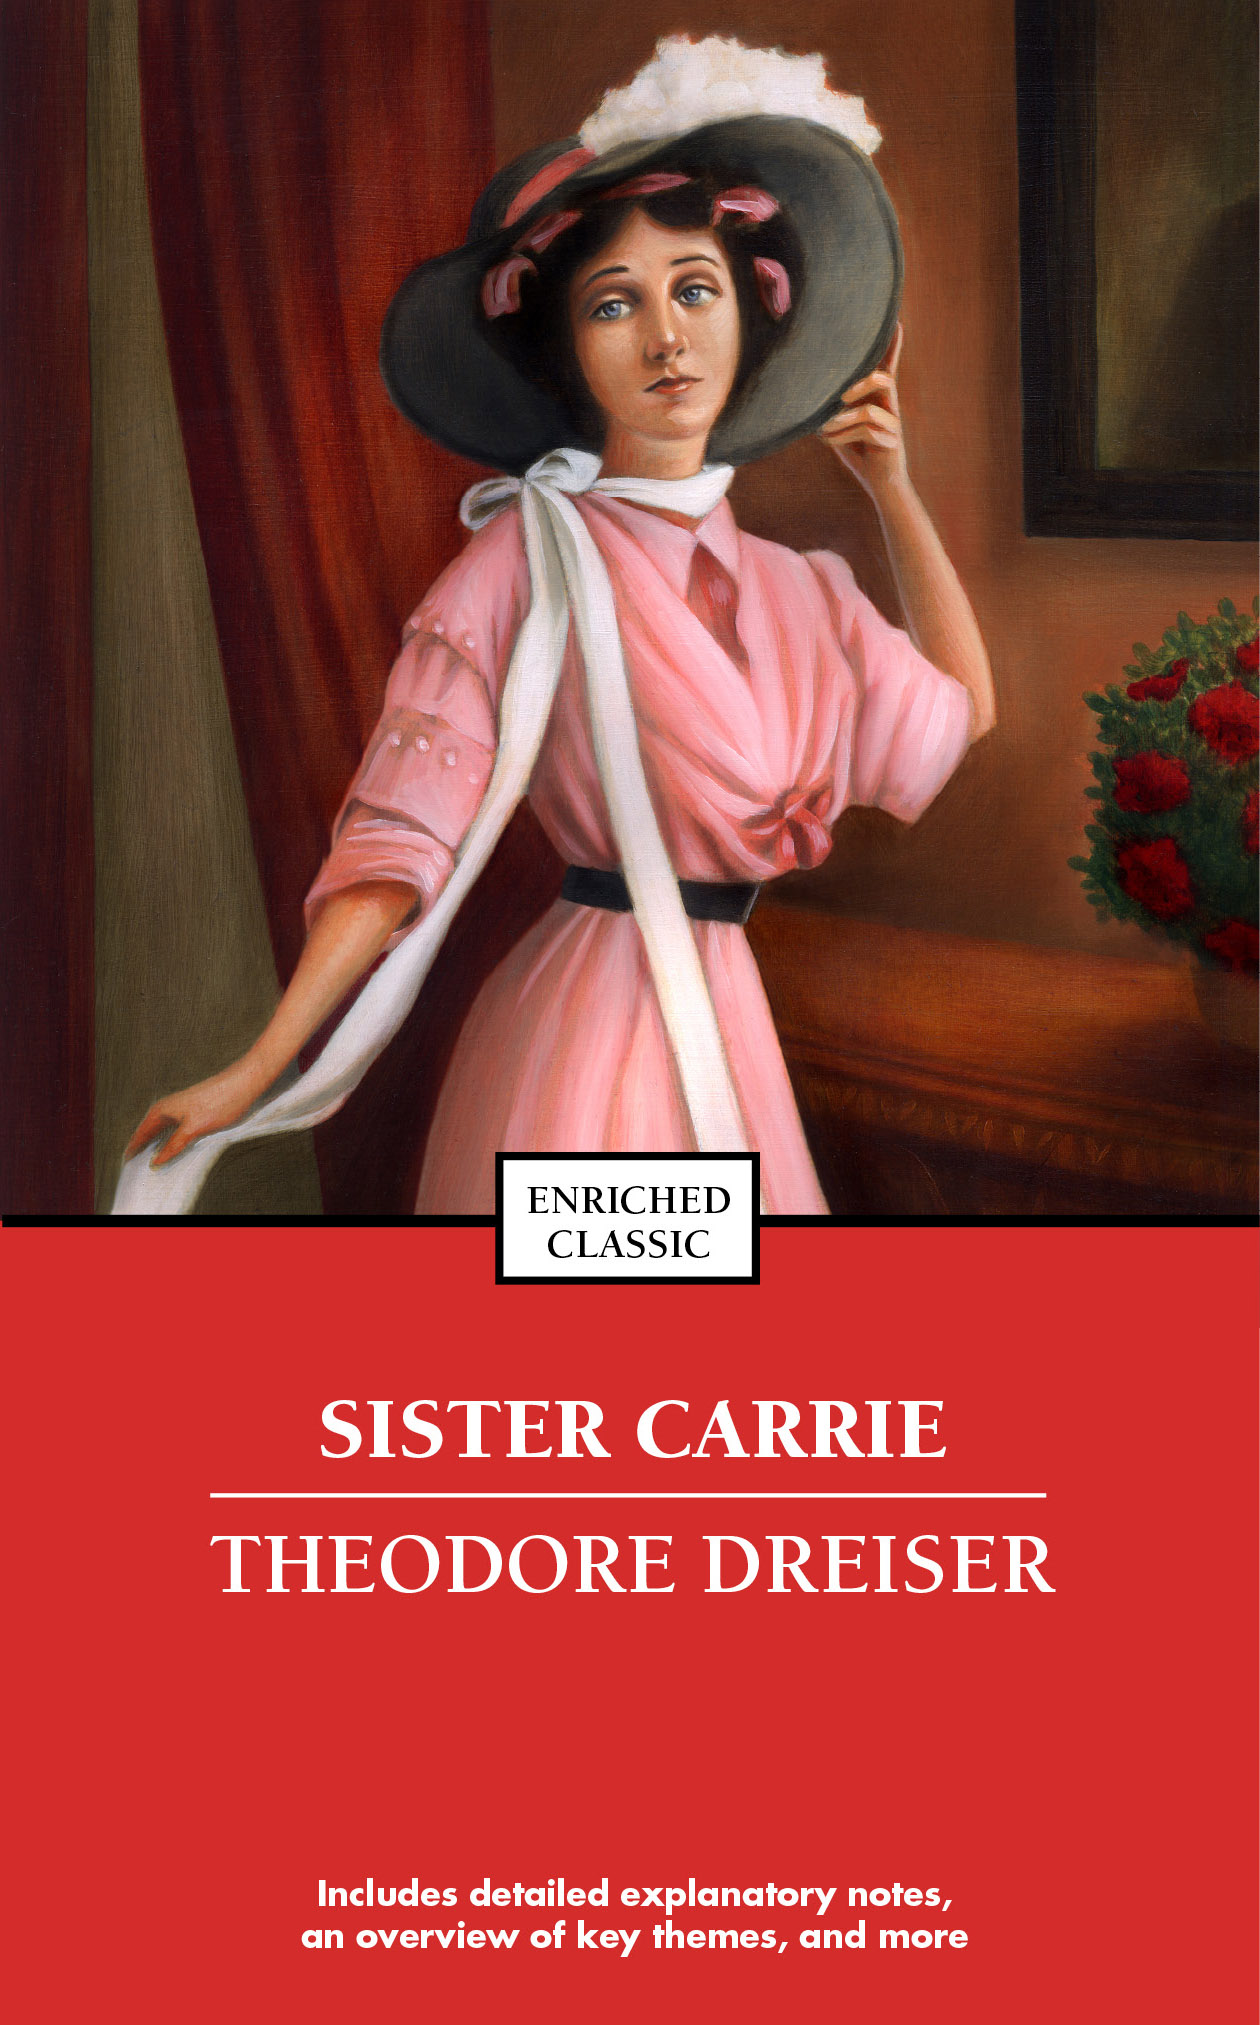 a review of societal changes in sister carrie a novel by theodore dreiser Dreiser's outstanding works were the novels sister carrie (1900) and an american tragedy (1925) dreiser was a committed socialist, and wrote several non-fiction books on political issues these included dreiser looks at russia (1928), the result of his 1927 trip to the soviet union, and two books presenting a critical perspective on capitalist.